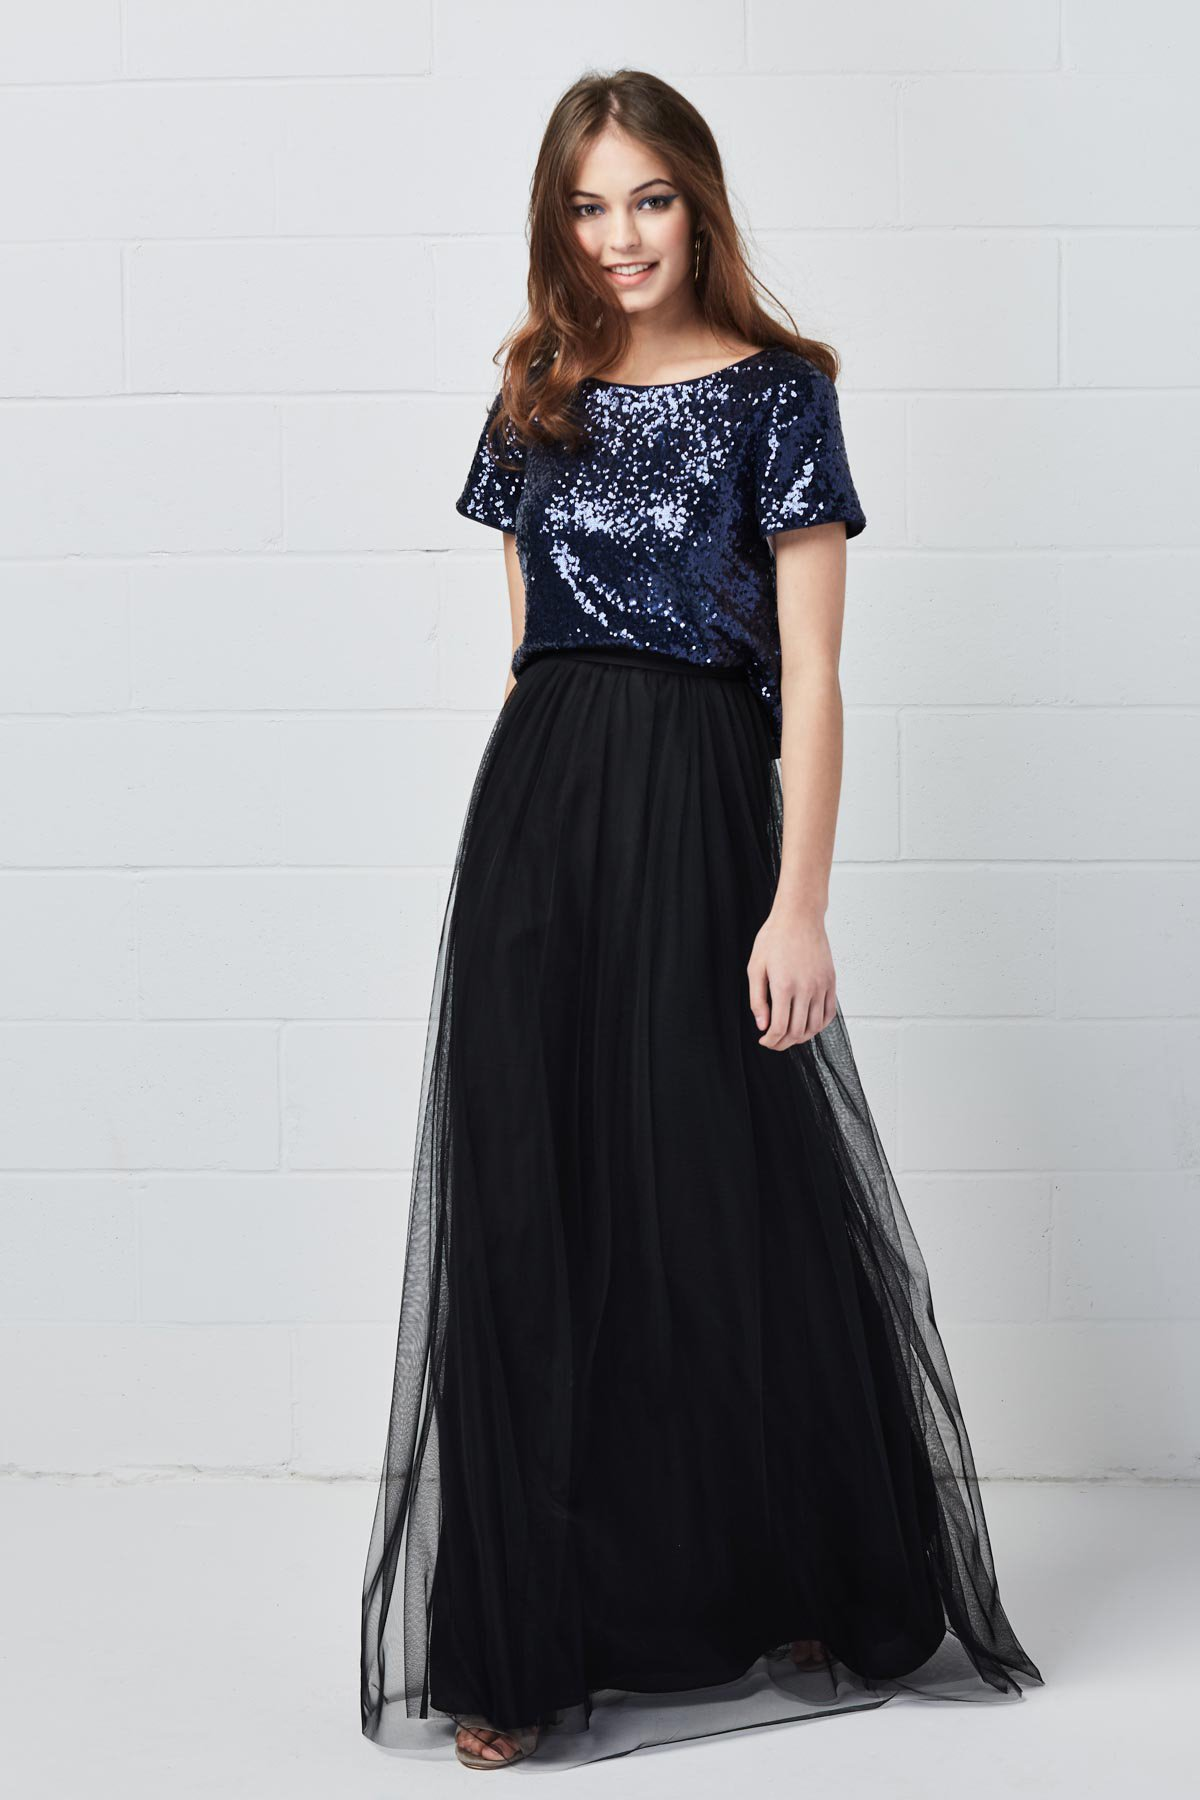 Watters Bridesmaids Style 80402 Loxley Top in Navy Blue éclat sequin at Gilded Social